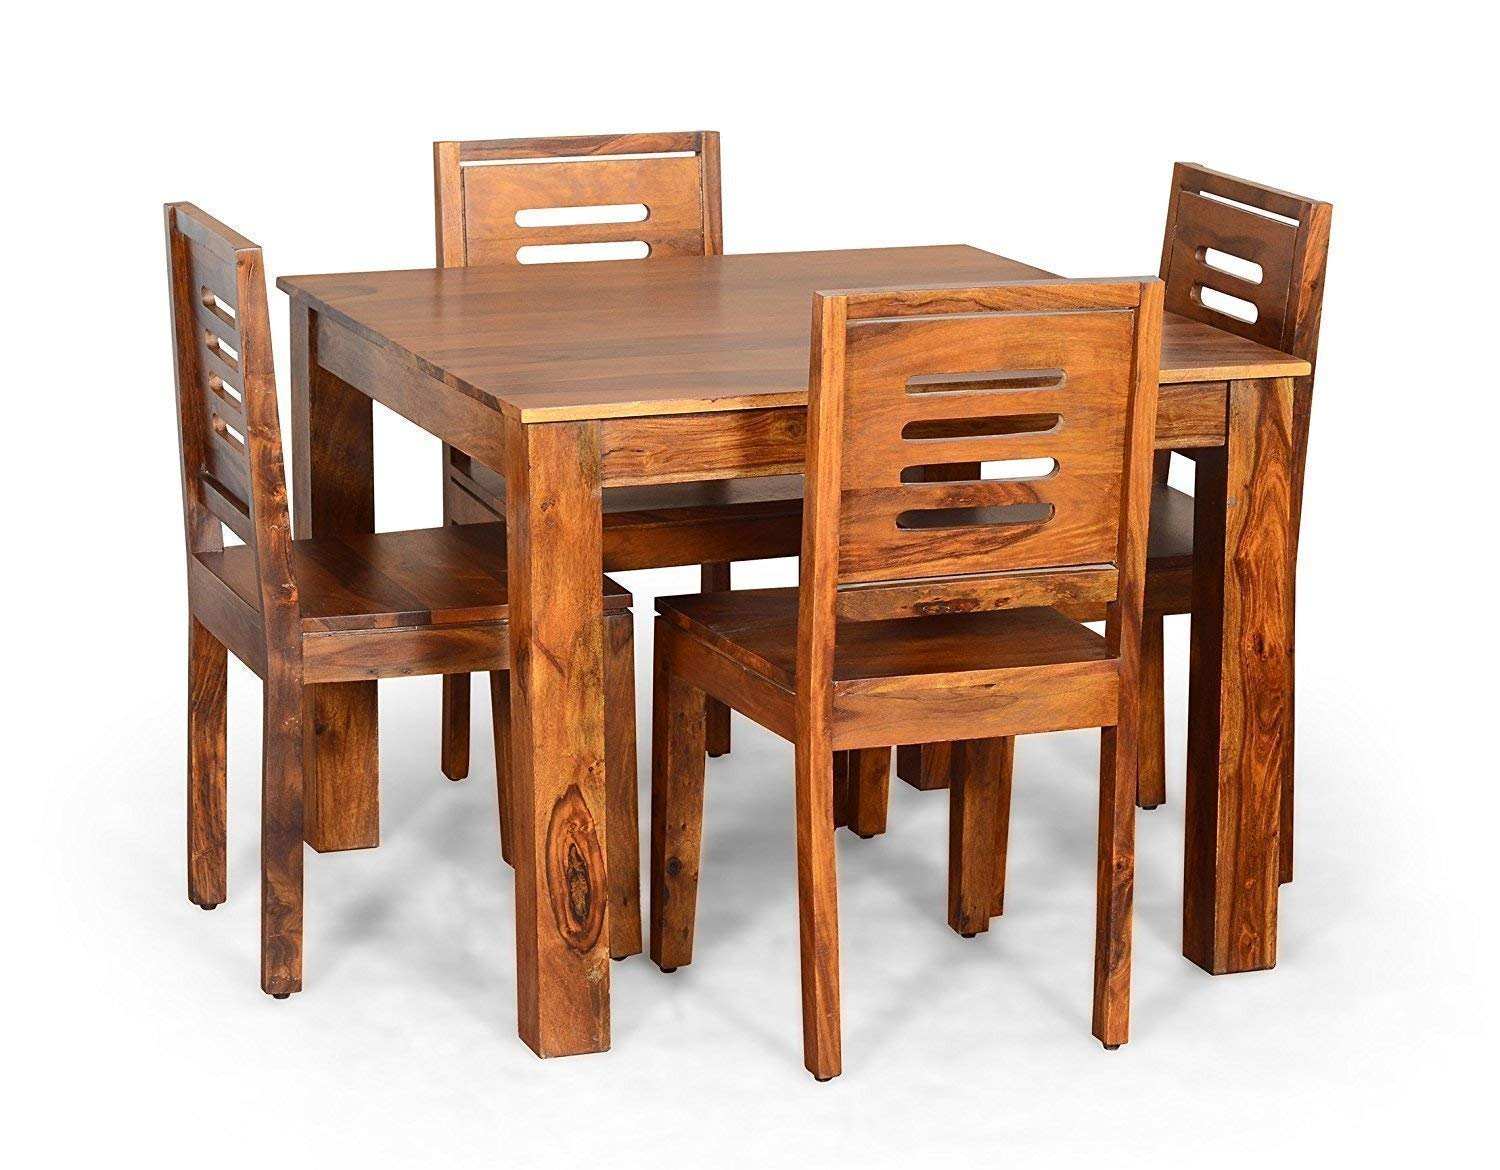 Monika Wood Furniture Solid Wood Dining Table 4 Seater Dinning Table With 4 Chairs Dining Room Furniture Sheesham Wood Natural Teak Finish Amazon In Home Kitchen